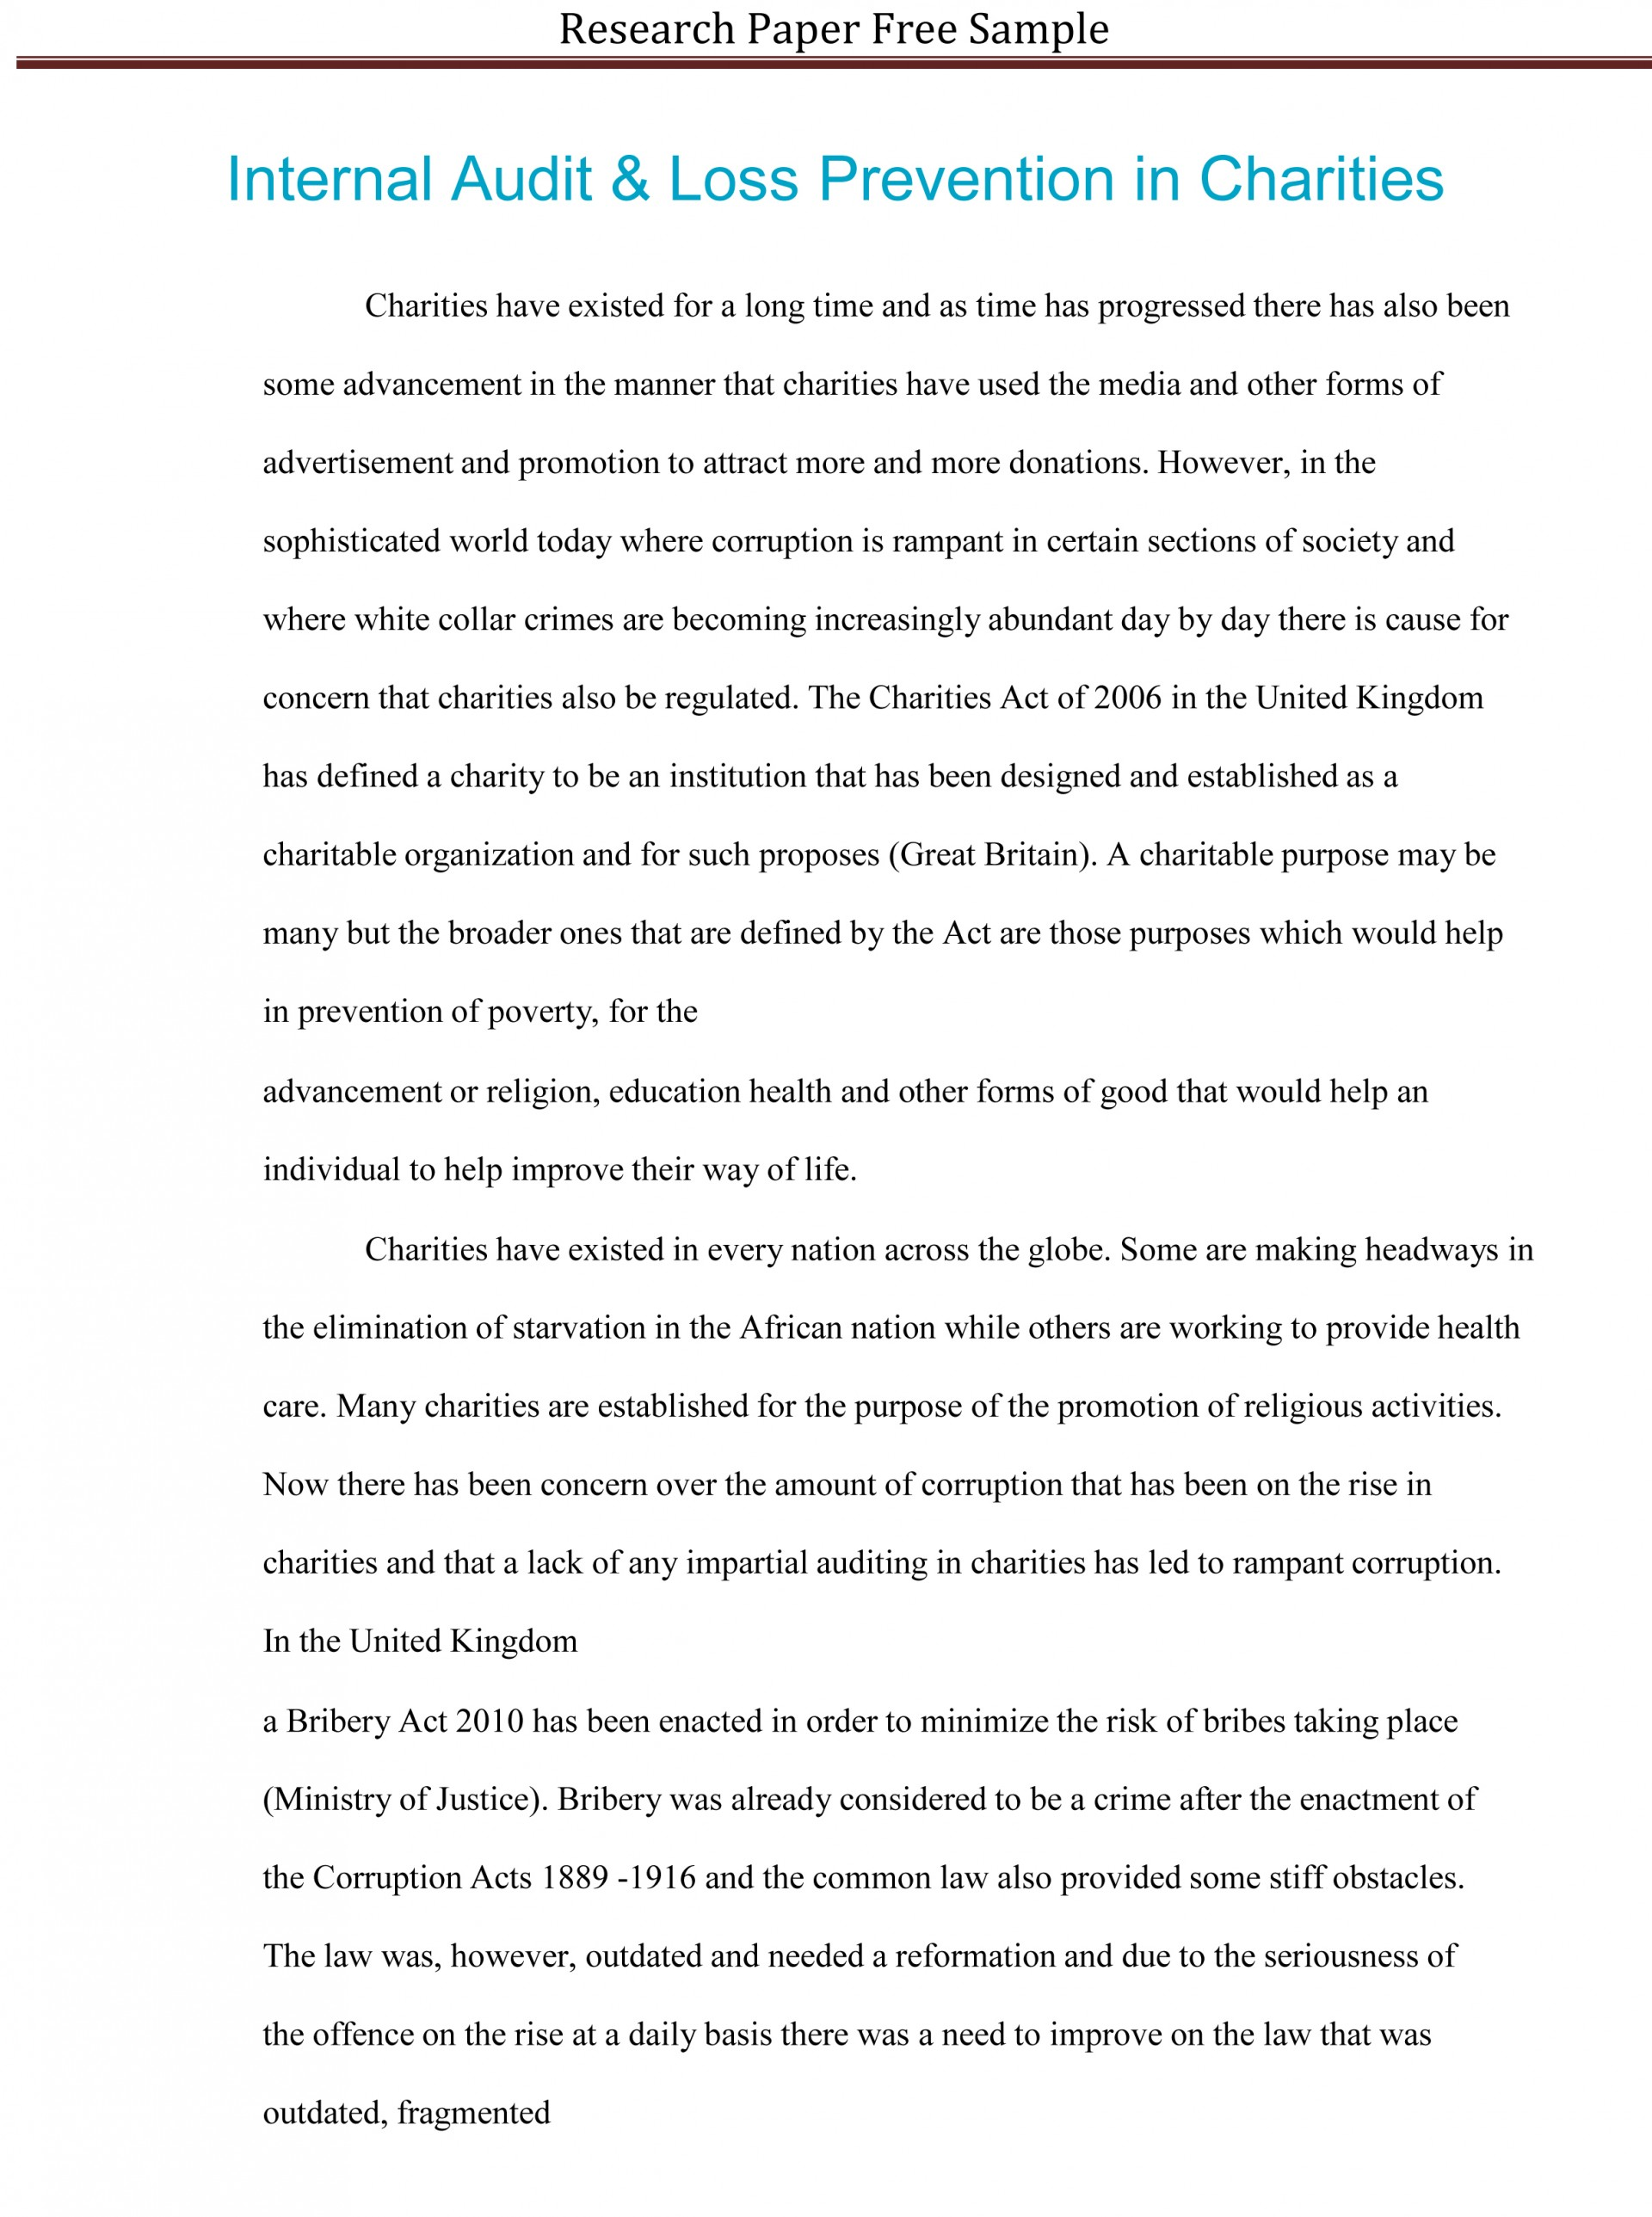 014 Example Of Introduction In Research Paper Help Writing Paragraph Unique About Business Bullying Cyberbullying 1920